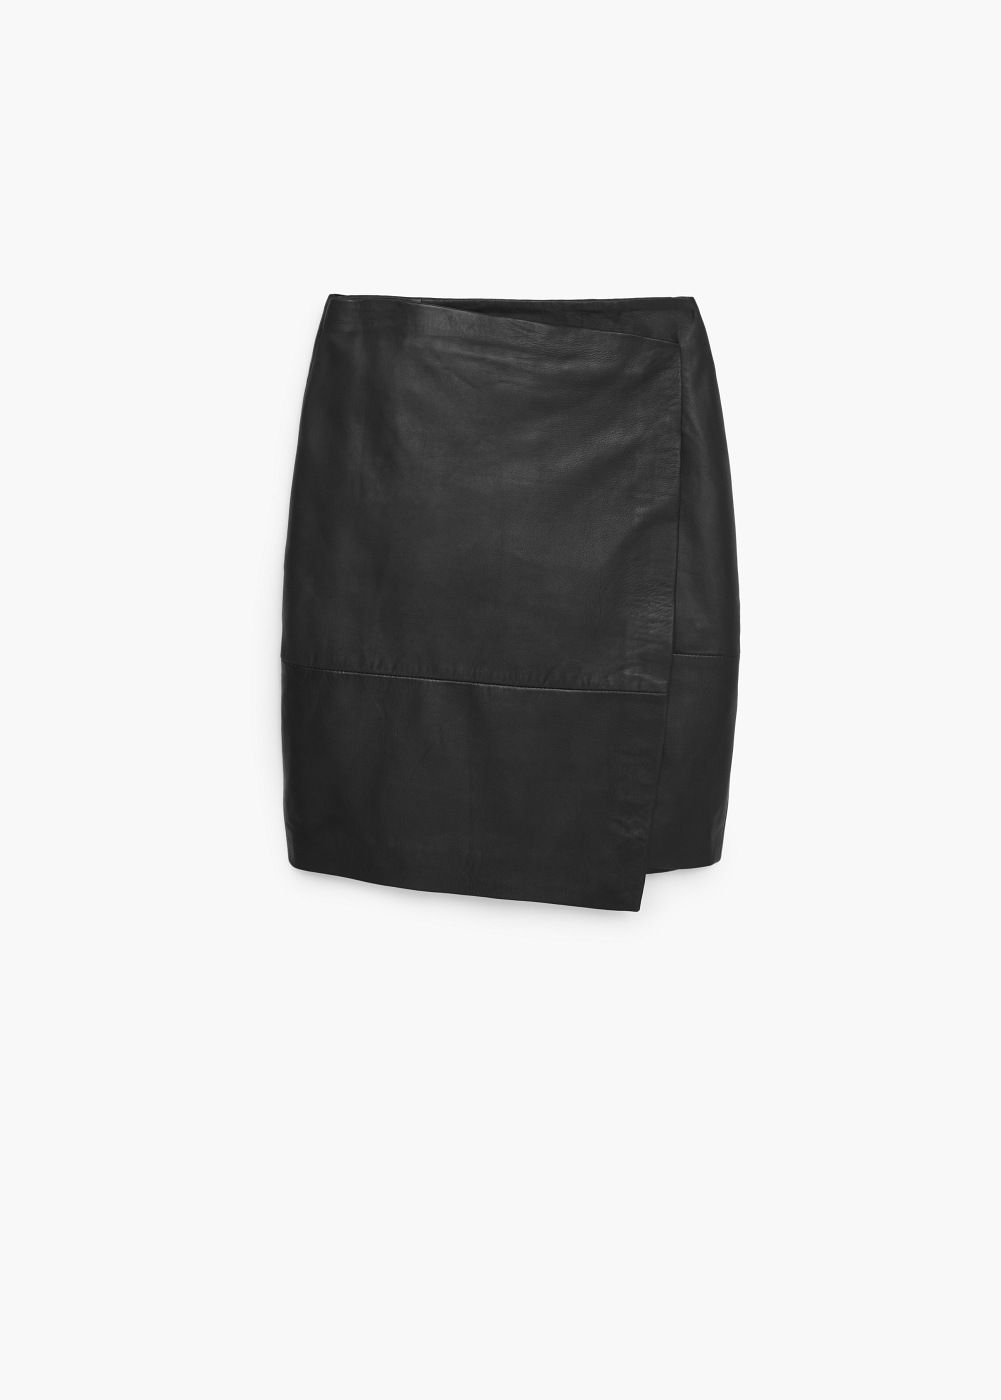 34aacef8704 Wrapped leather skirt - Women | Working Closet | Skirts, Leather ...